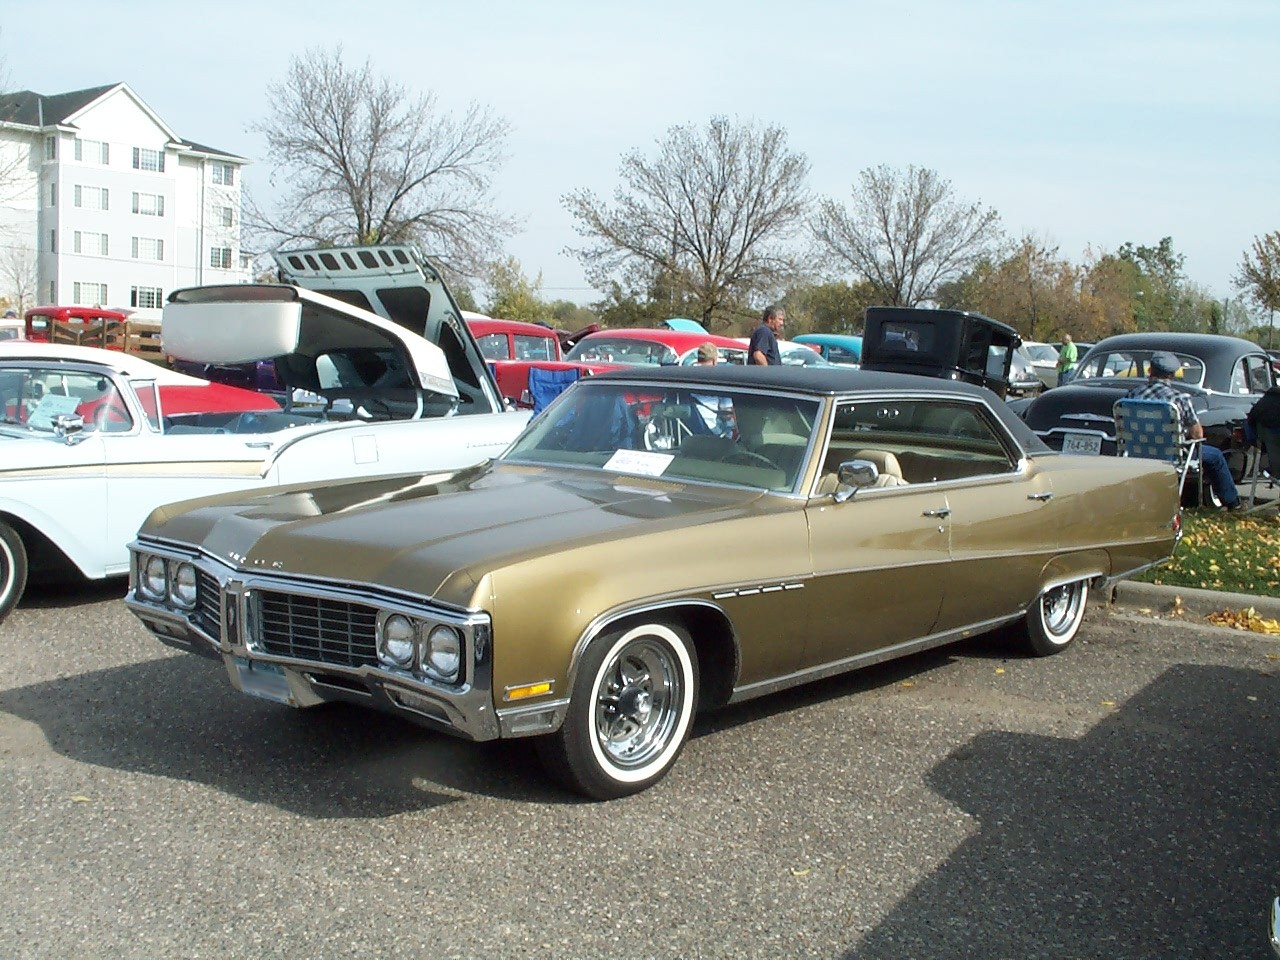 Buick Electra 225 LTD 1970 - Myndir - sgb.blog.is